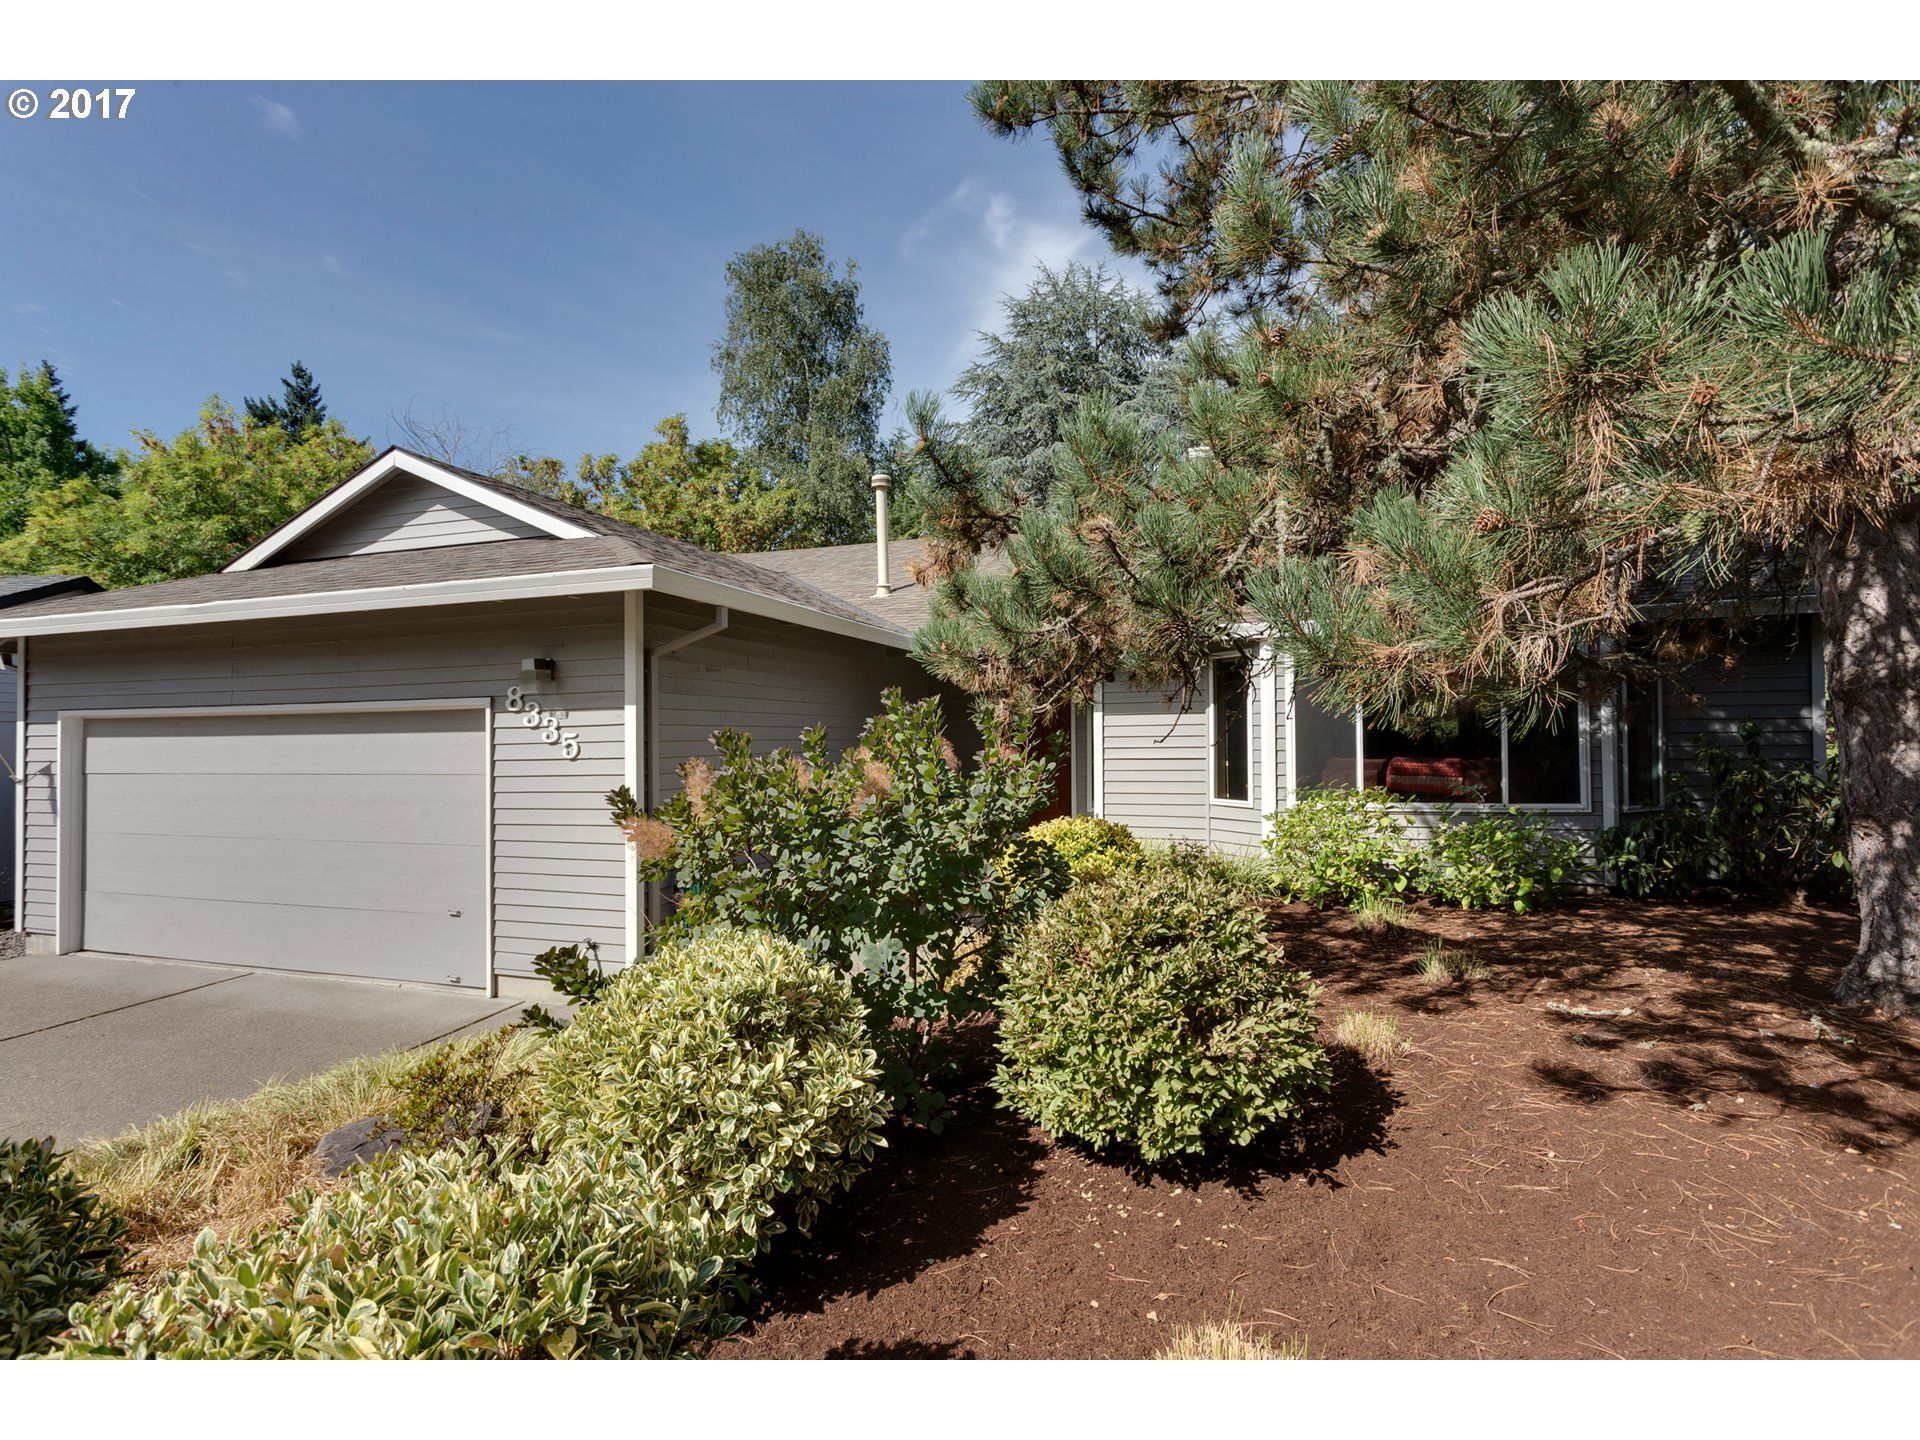 Beautifully Updated 1700 SF 1 Level on Cul-Se-Sac w/Great Floorplan! Kitchen: Island w/Eating Bar, New Maple Cabinets w/pull out drawers, Quartz Counters & Pantry. Updated Bathrooms. Newer Vinyl Windows. Newer Carpet. Master Bath: Dbl Sinks, Skylight & 2 Closets. Backyard: Huge Deck, Newer Fence, Shed, Low Maintenance & Drip System. Roof 2009, Water Heater 2016. Cedar Siding. Walk to 30 acre Highland Nature Park, close to HWY 217.